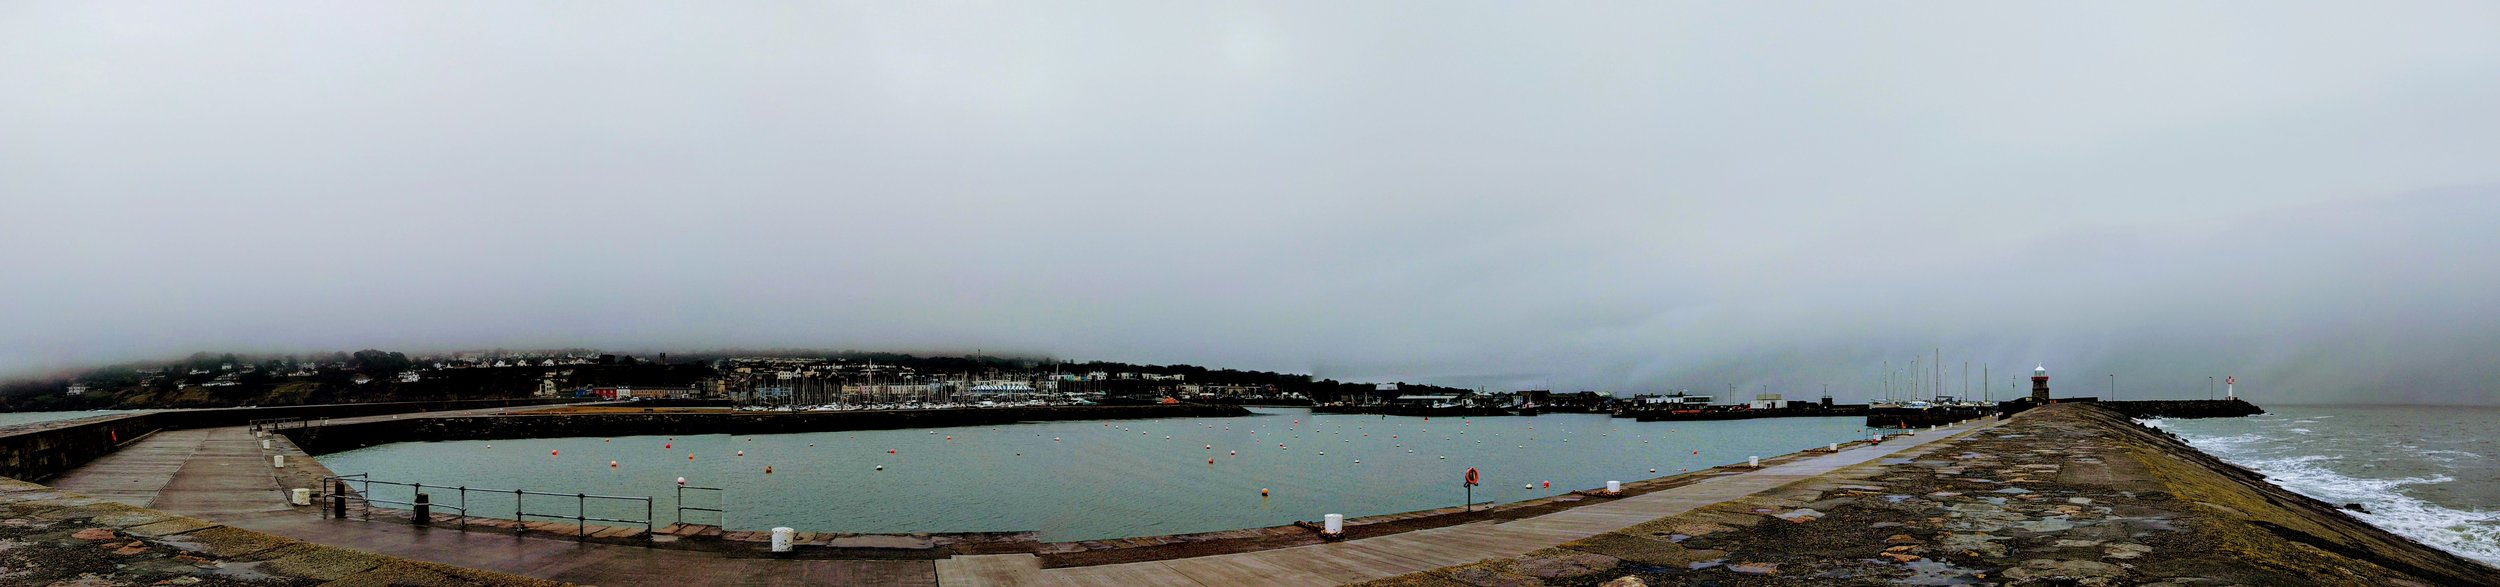 View from the Howth pier